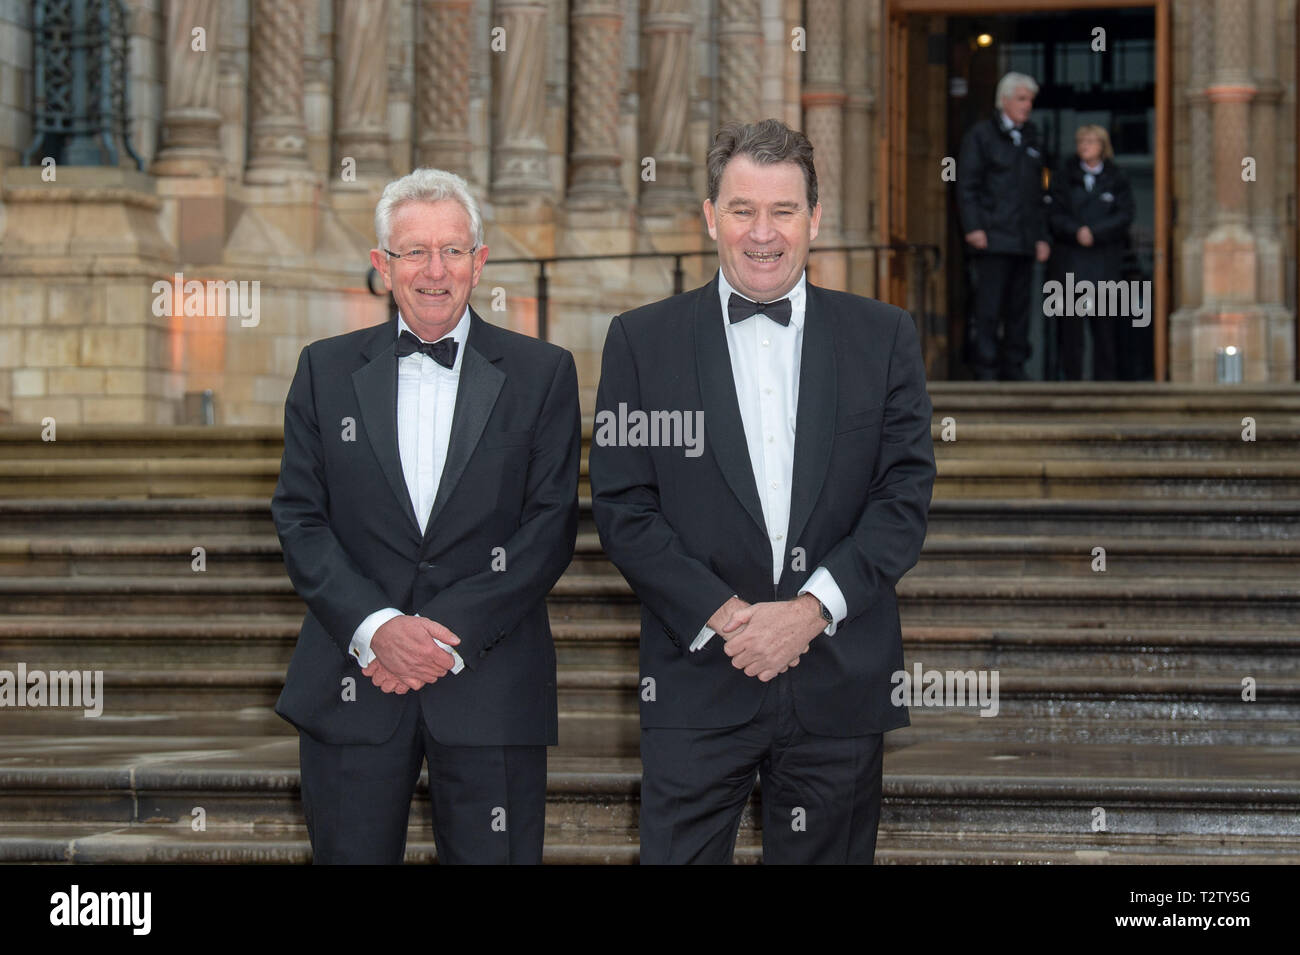 London, United Kingdom. 4 April 2019. Keith Scholey & Alastair Fothergill arrive at the global premiere of 'Our Planet' presented by Netflix. Credit: Peter Manning/Alamy Live News - Stock Image